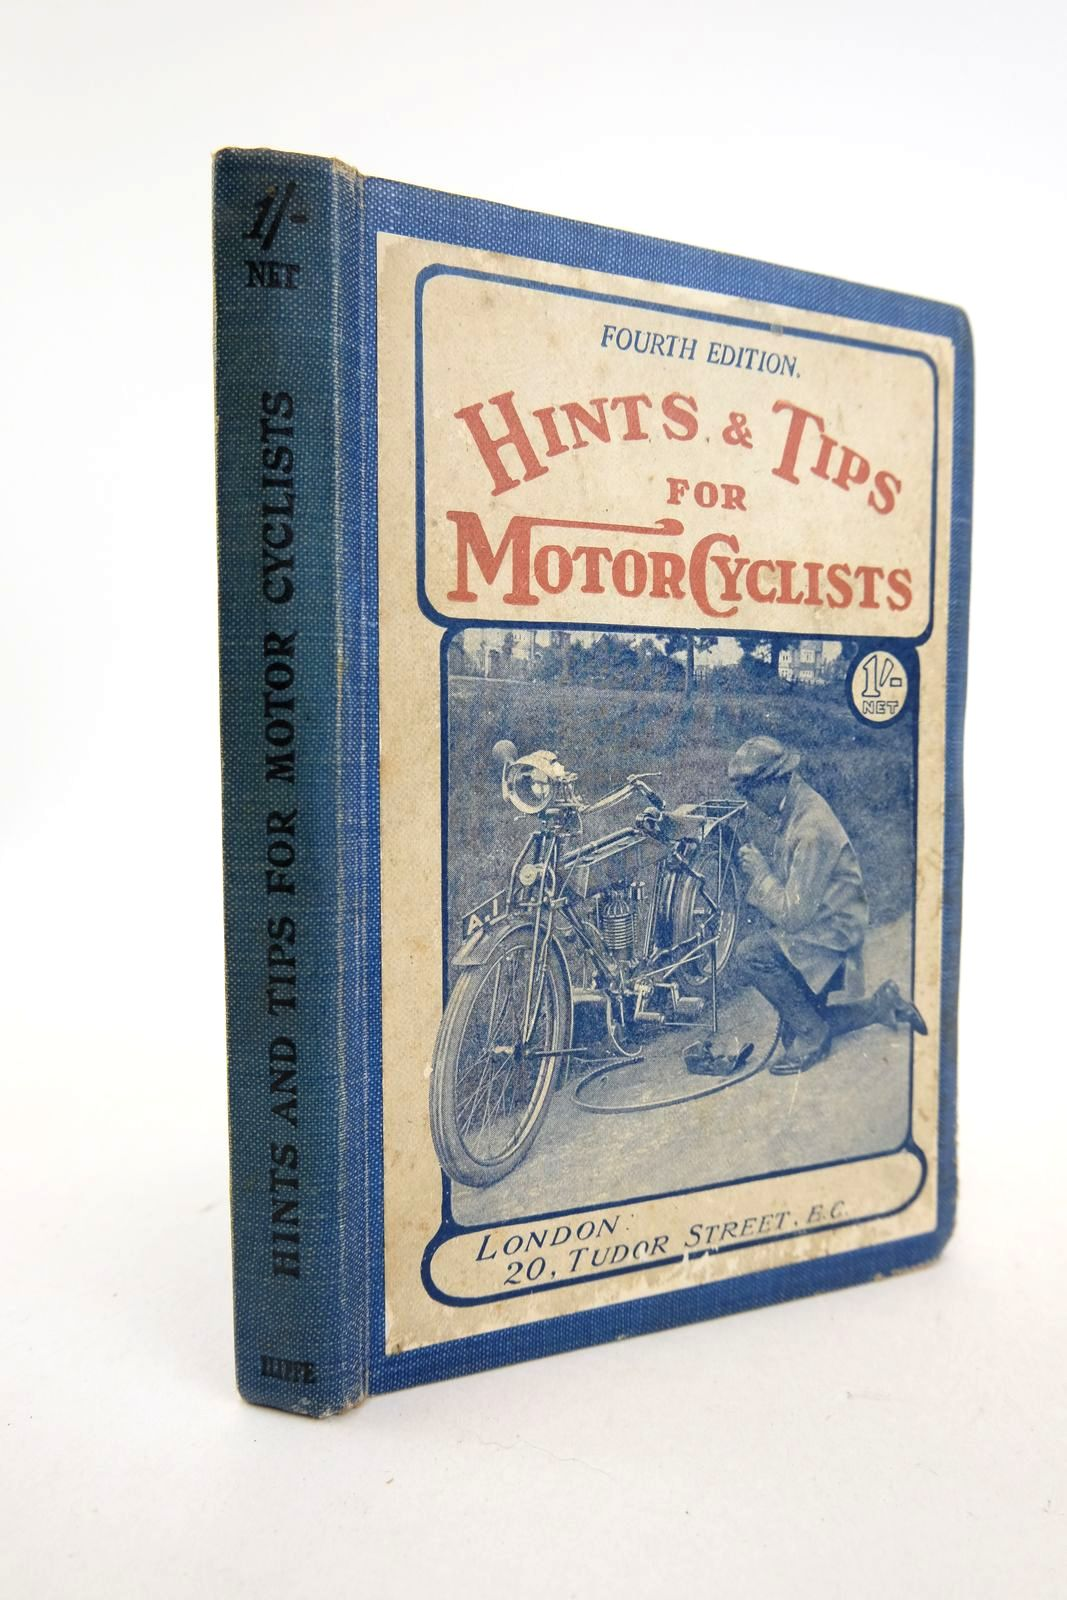 Photo of HINTS & TIPS FOR MOTOR CYCLISTS published by Iliffe & Sons Limited (STOCK CODE: 2133284)  for sale by Stella & Rose's Books